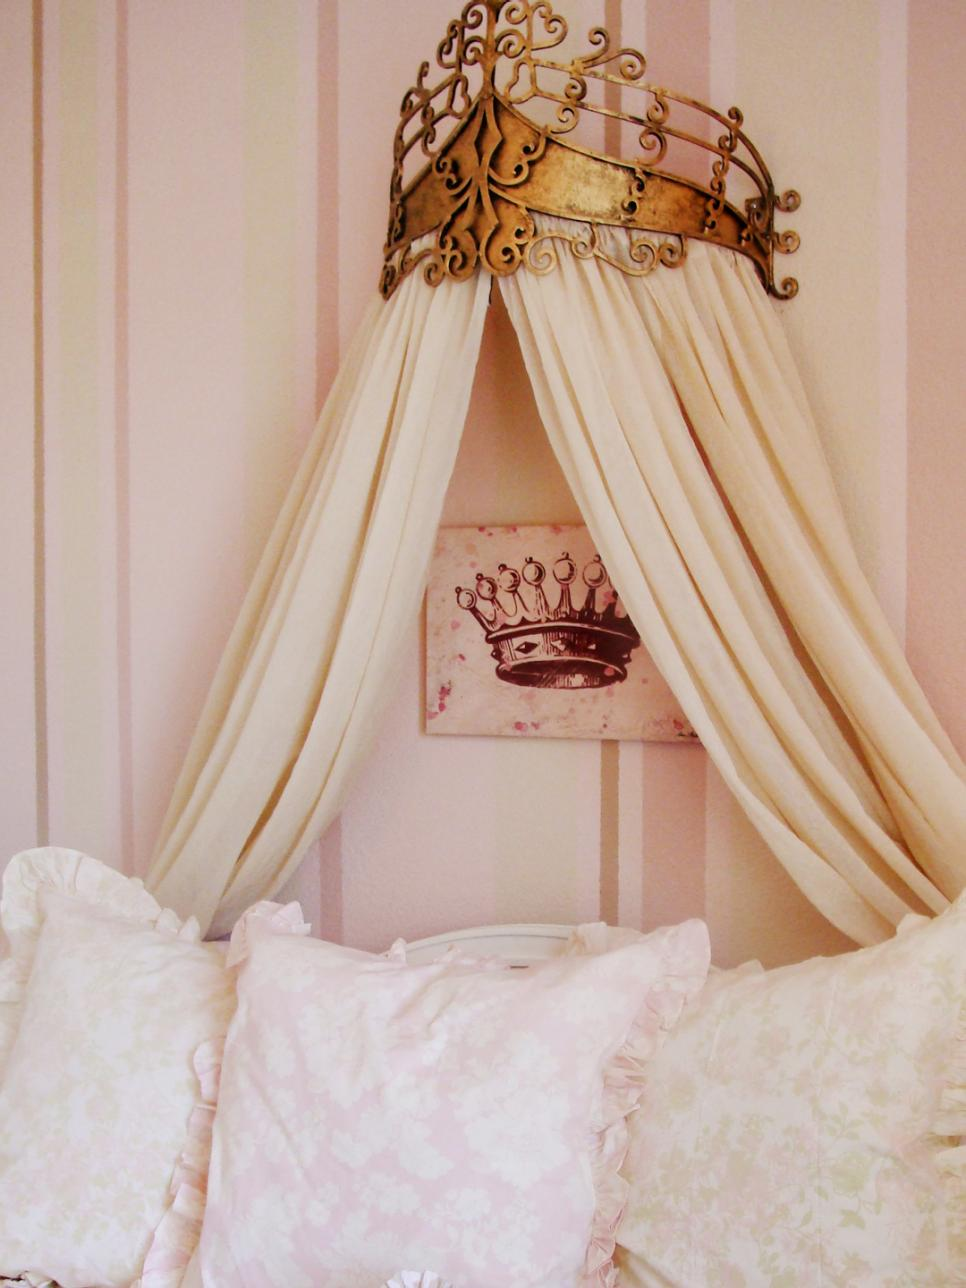 Bed Crown Design Ideas HGTV - Canopy idea bed crown